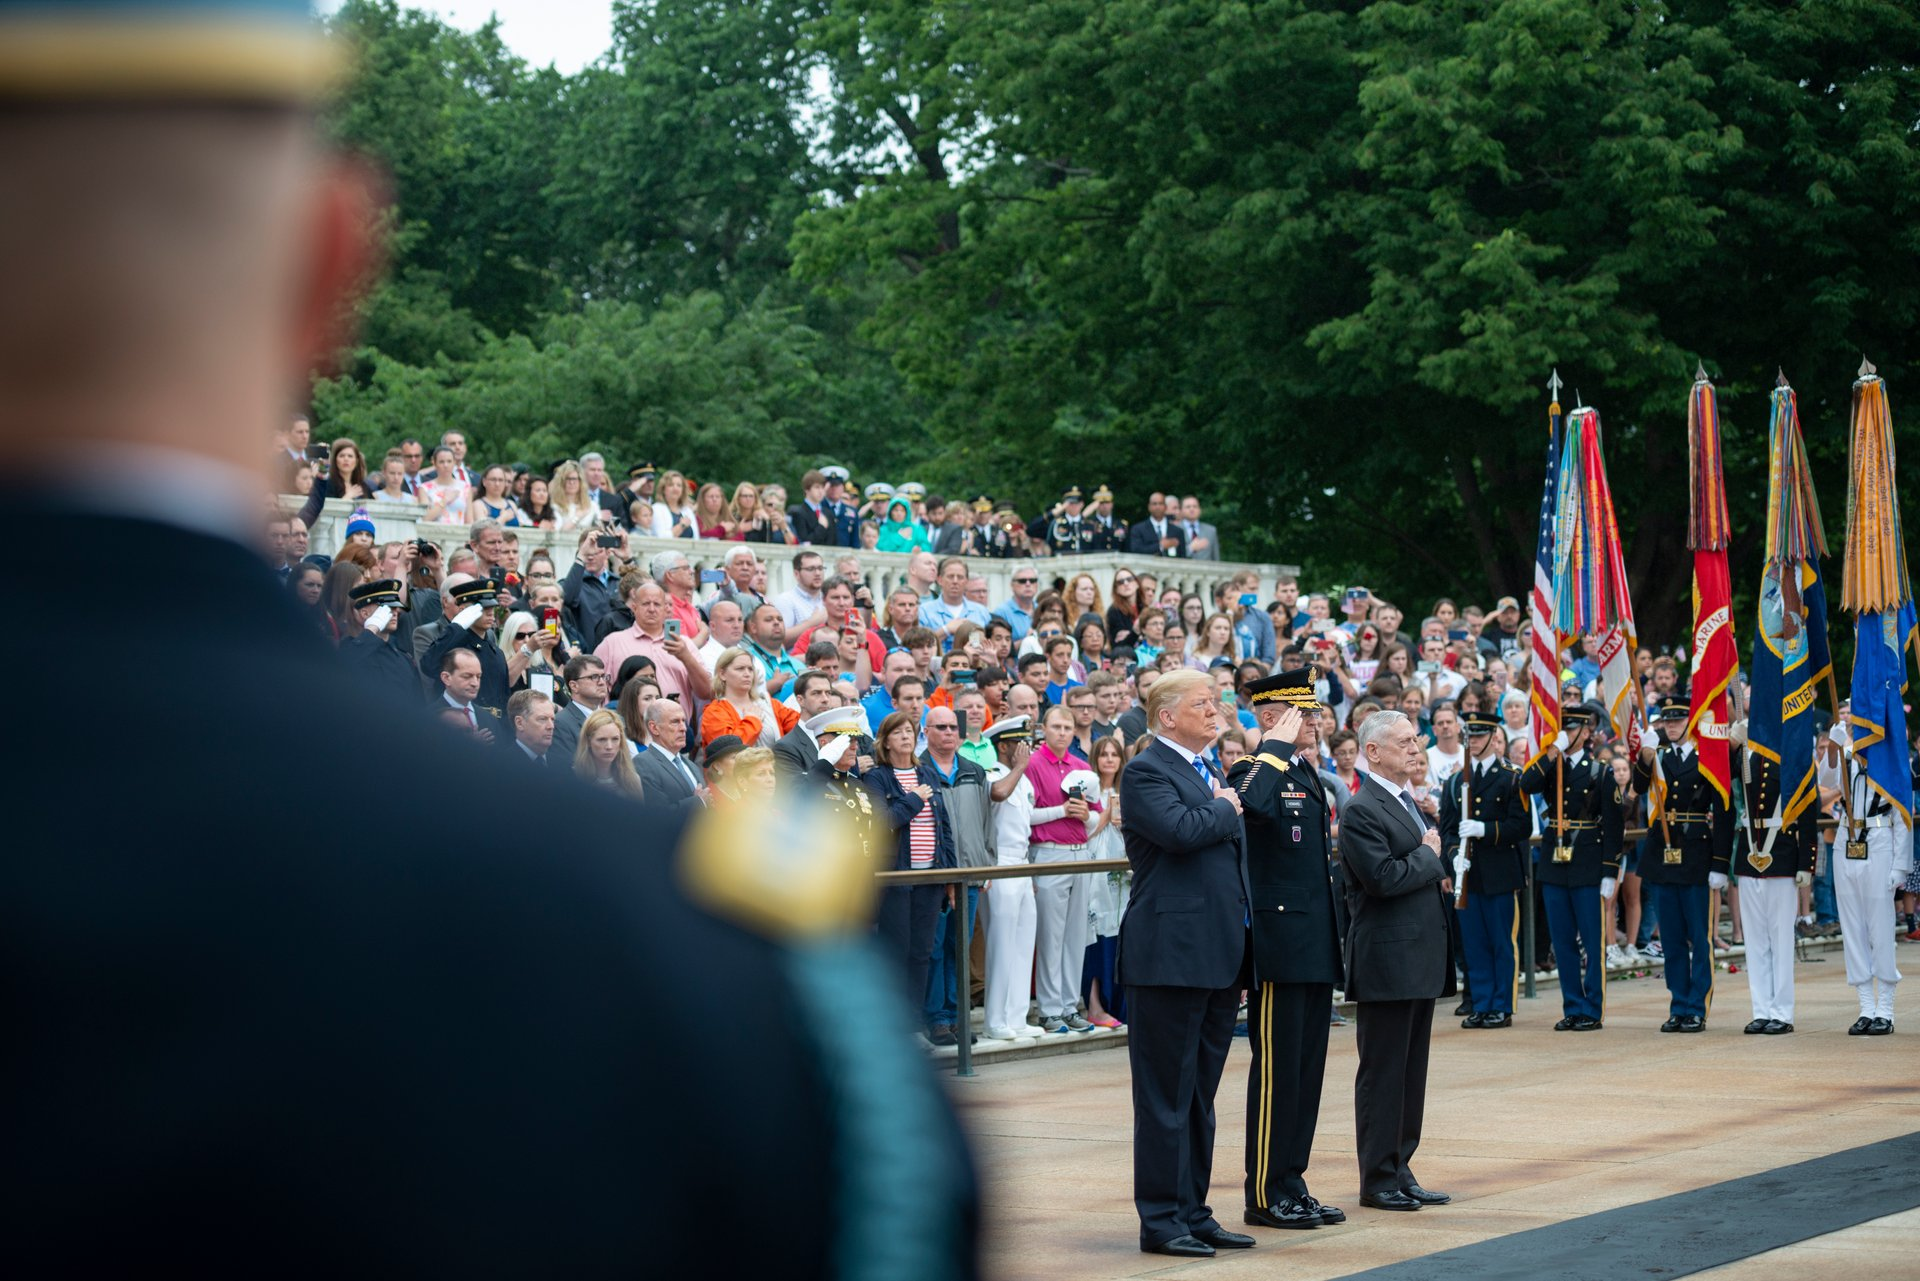 Presidential Armed Forces Full Honors Wreath-Laying Ceremony in observance of Memorial Day at Arlington National Cemetery, Arlington, Virginia 2020